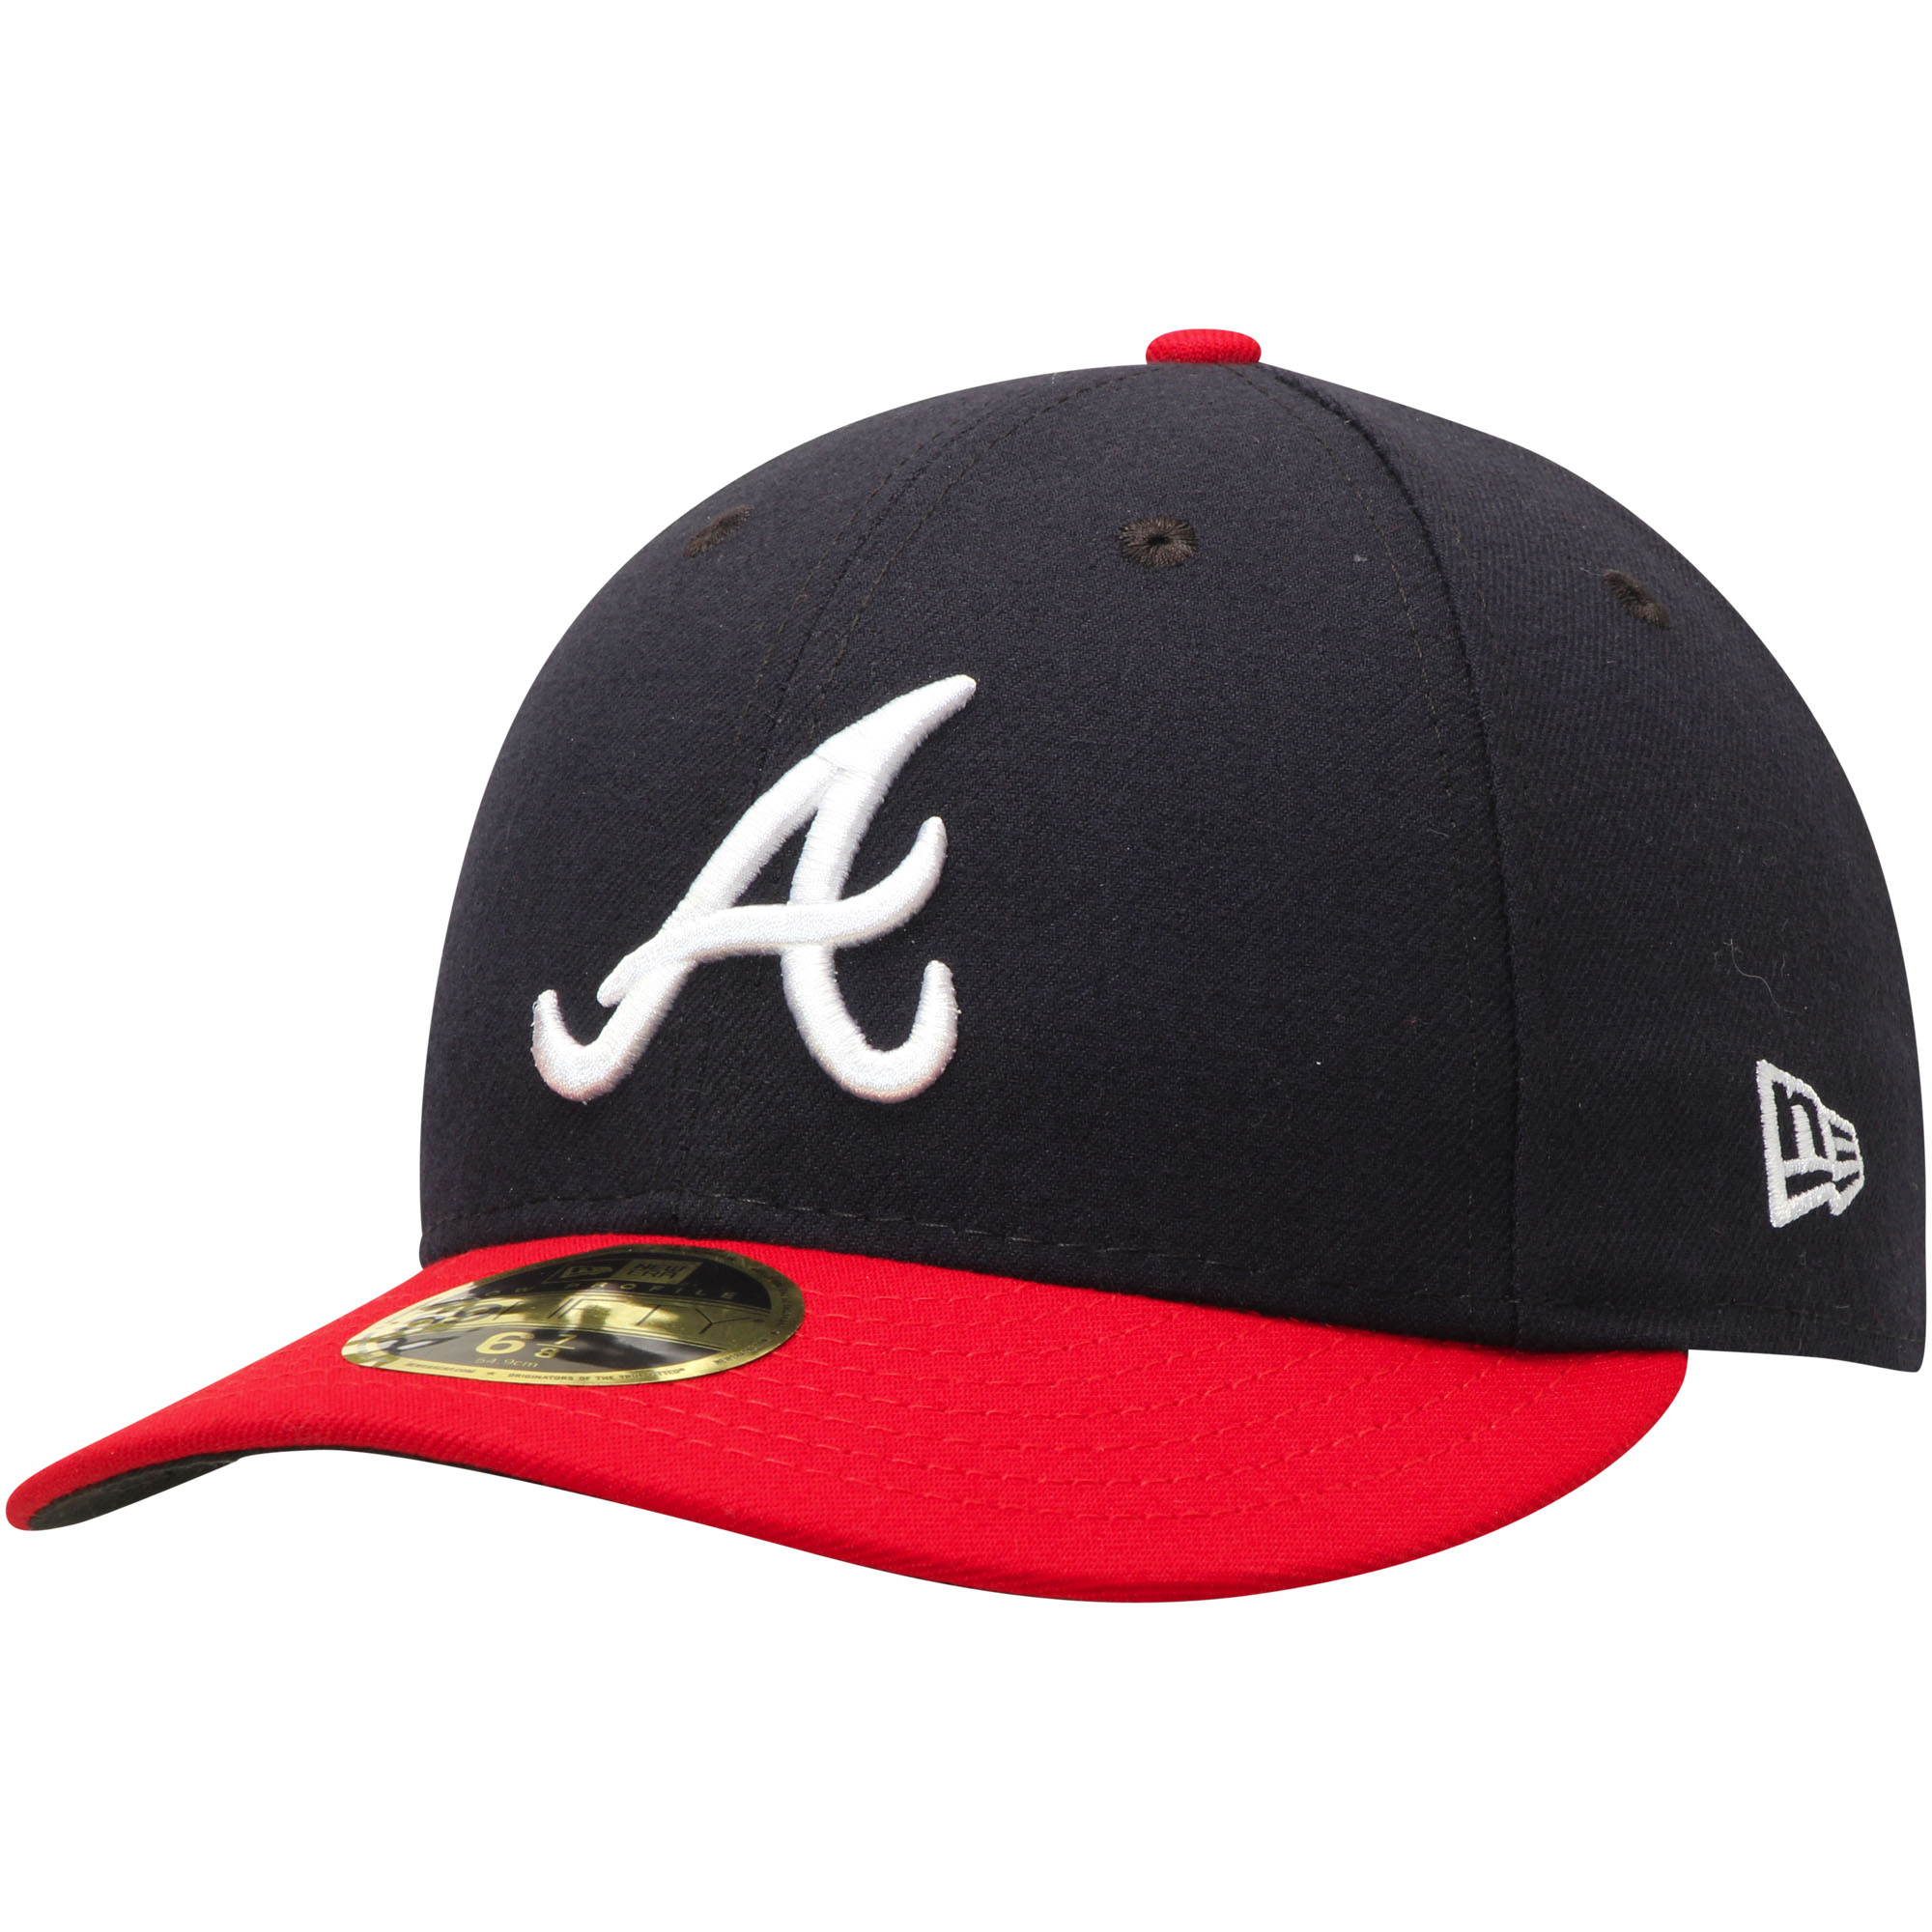 Atlanta Braves New Era Home Authentic Collection On-Field Low Profile 59FIFTY Fitted Hat - Navy/Red